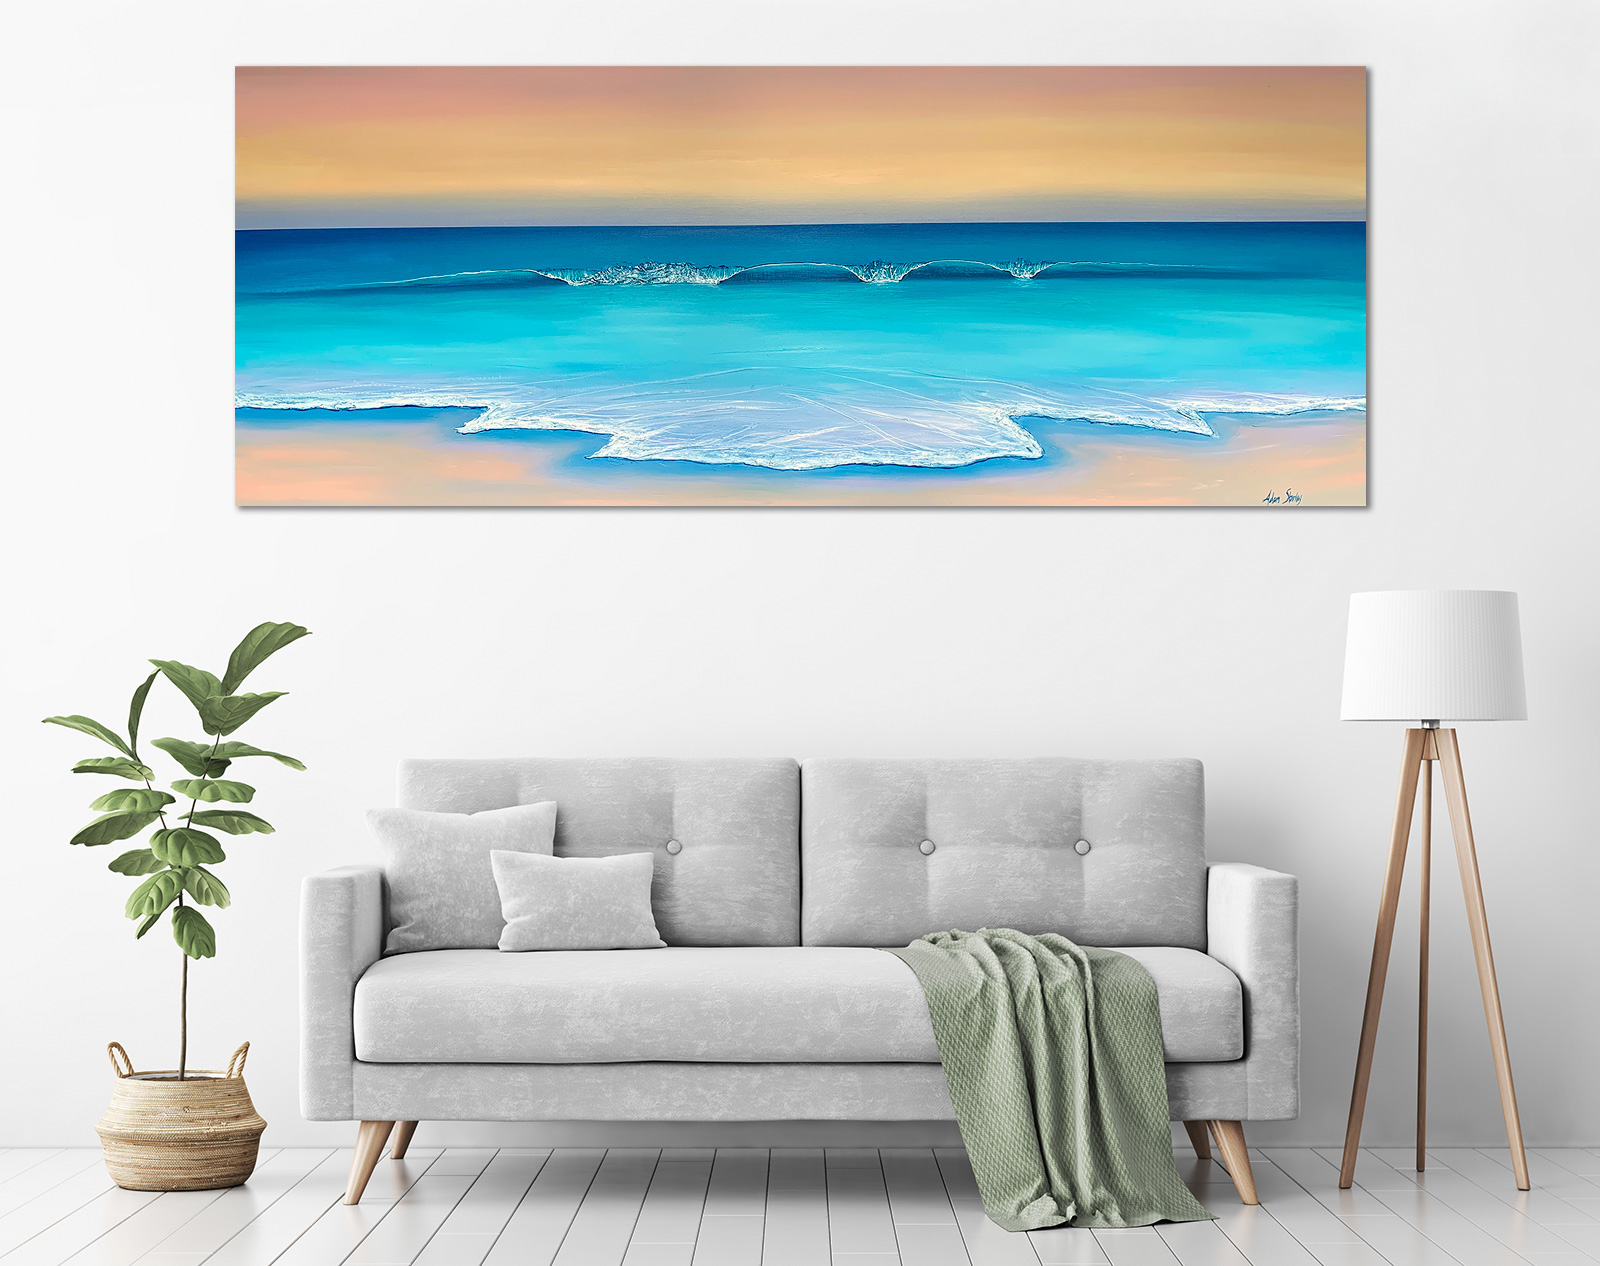 Adam Stanley - 'Boranup Beach Panorama' in a room